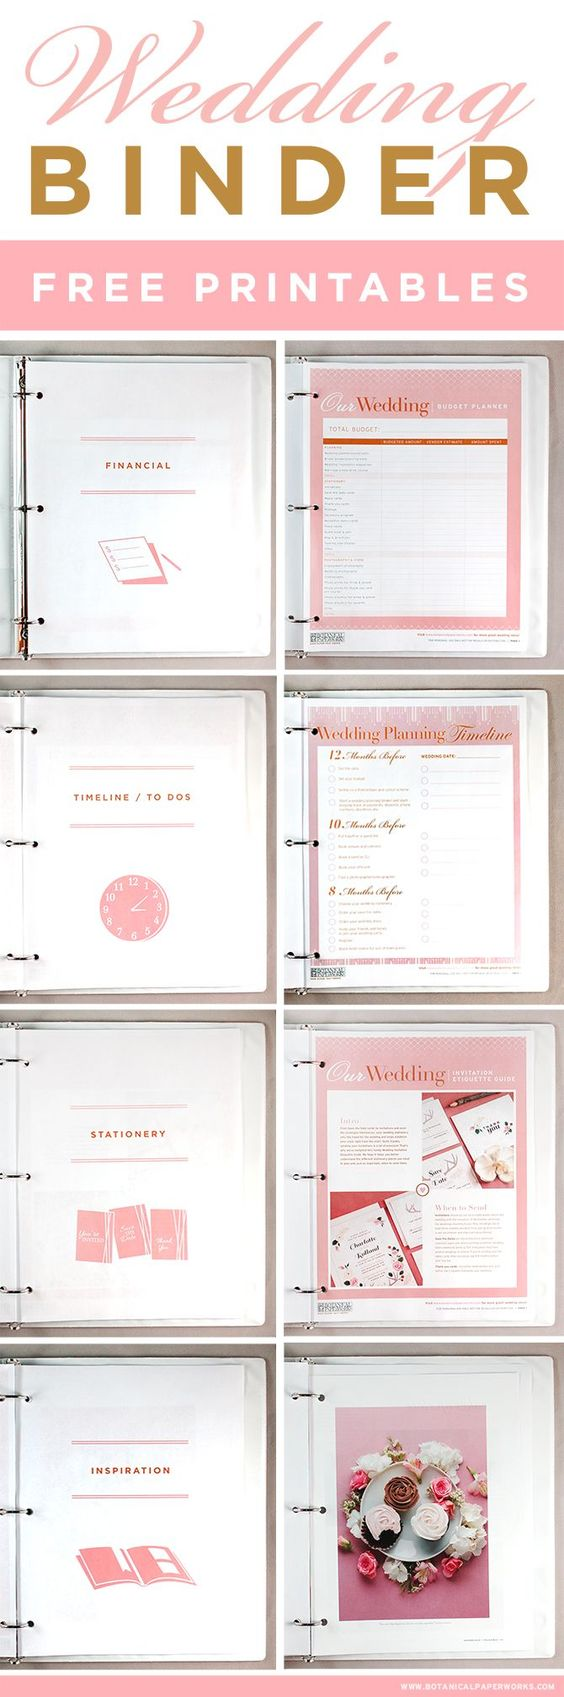 Get access to these FREE printables to help you create the wedding planning binder of your dreams! #freeprintables #freeprintable: